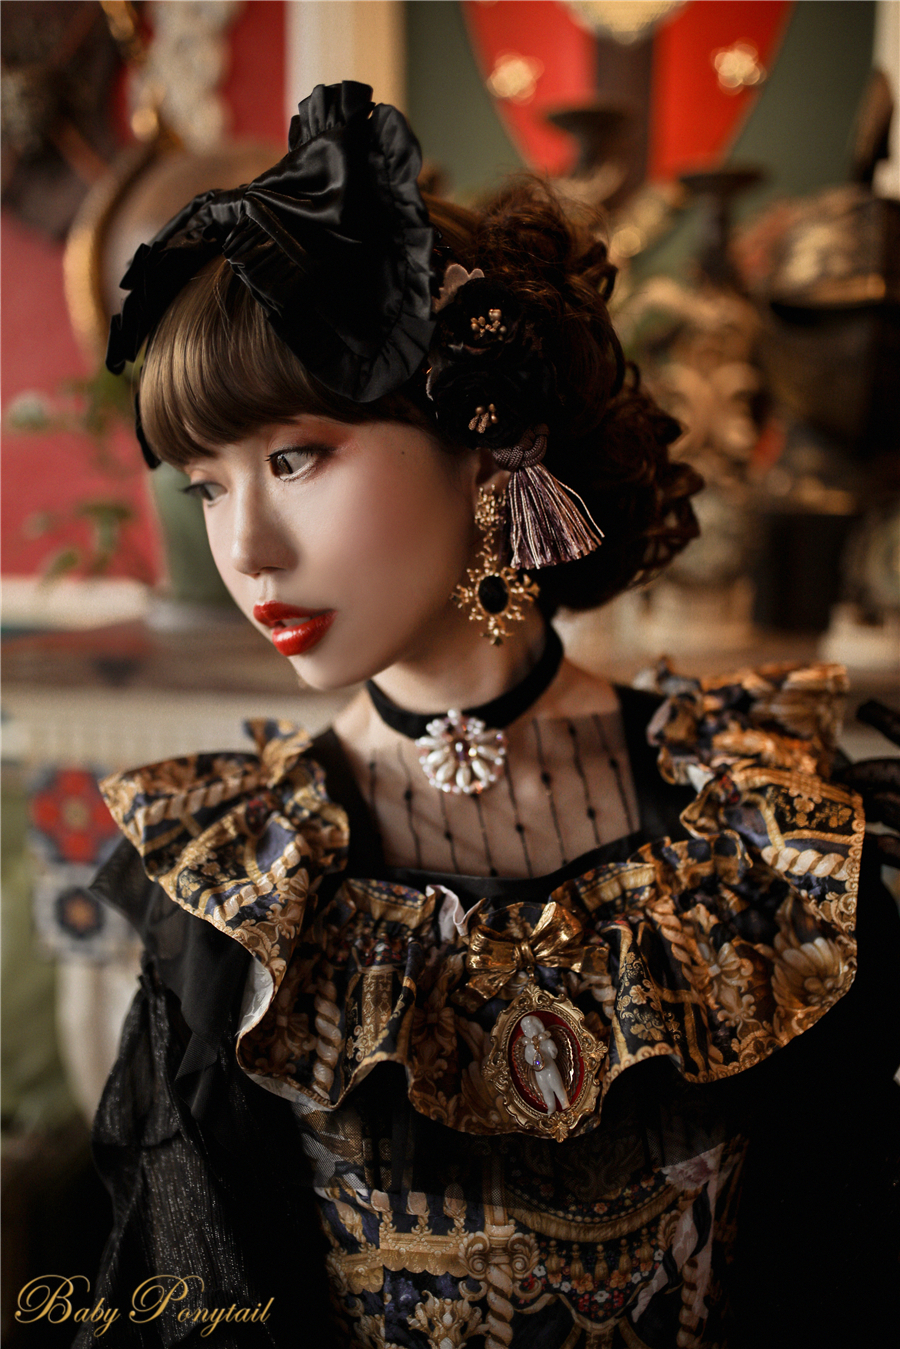 Babyponytail_Model_Ruffle Collar JSK_Black Present Angel_Kaka_18.jpg